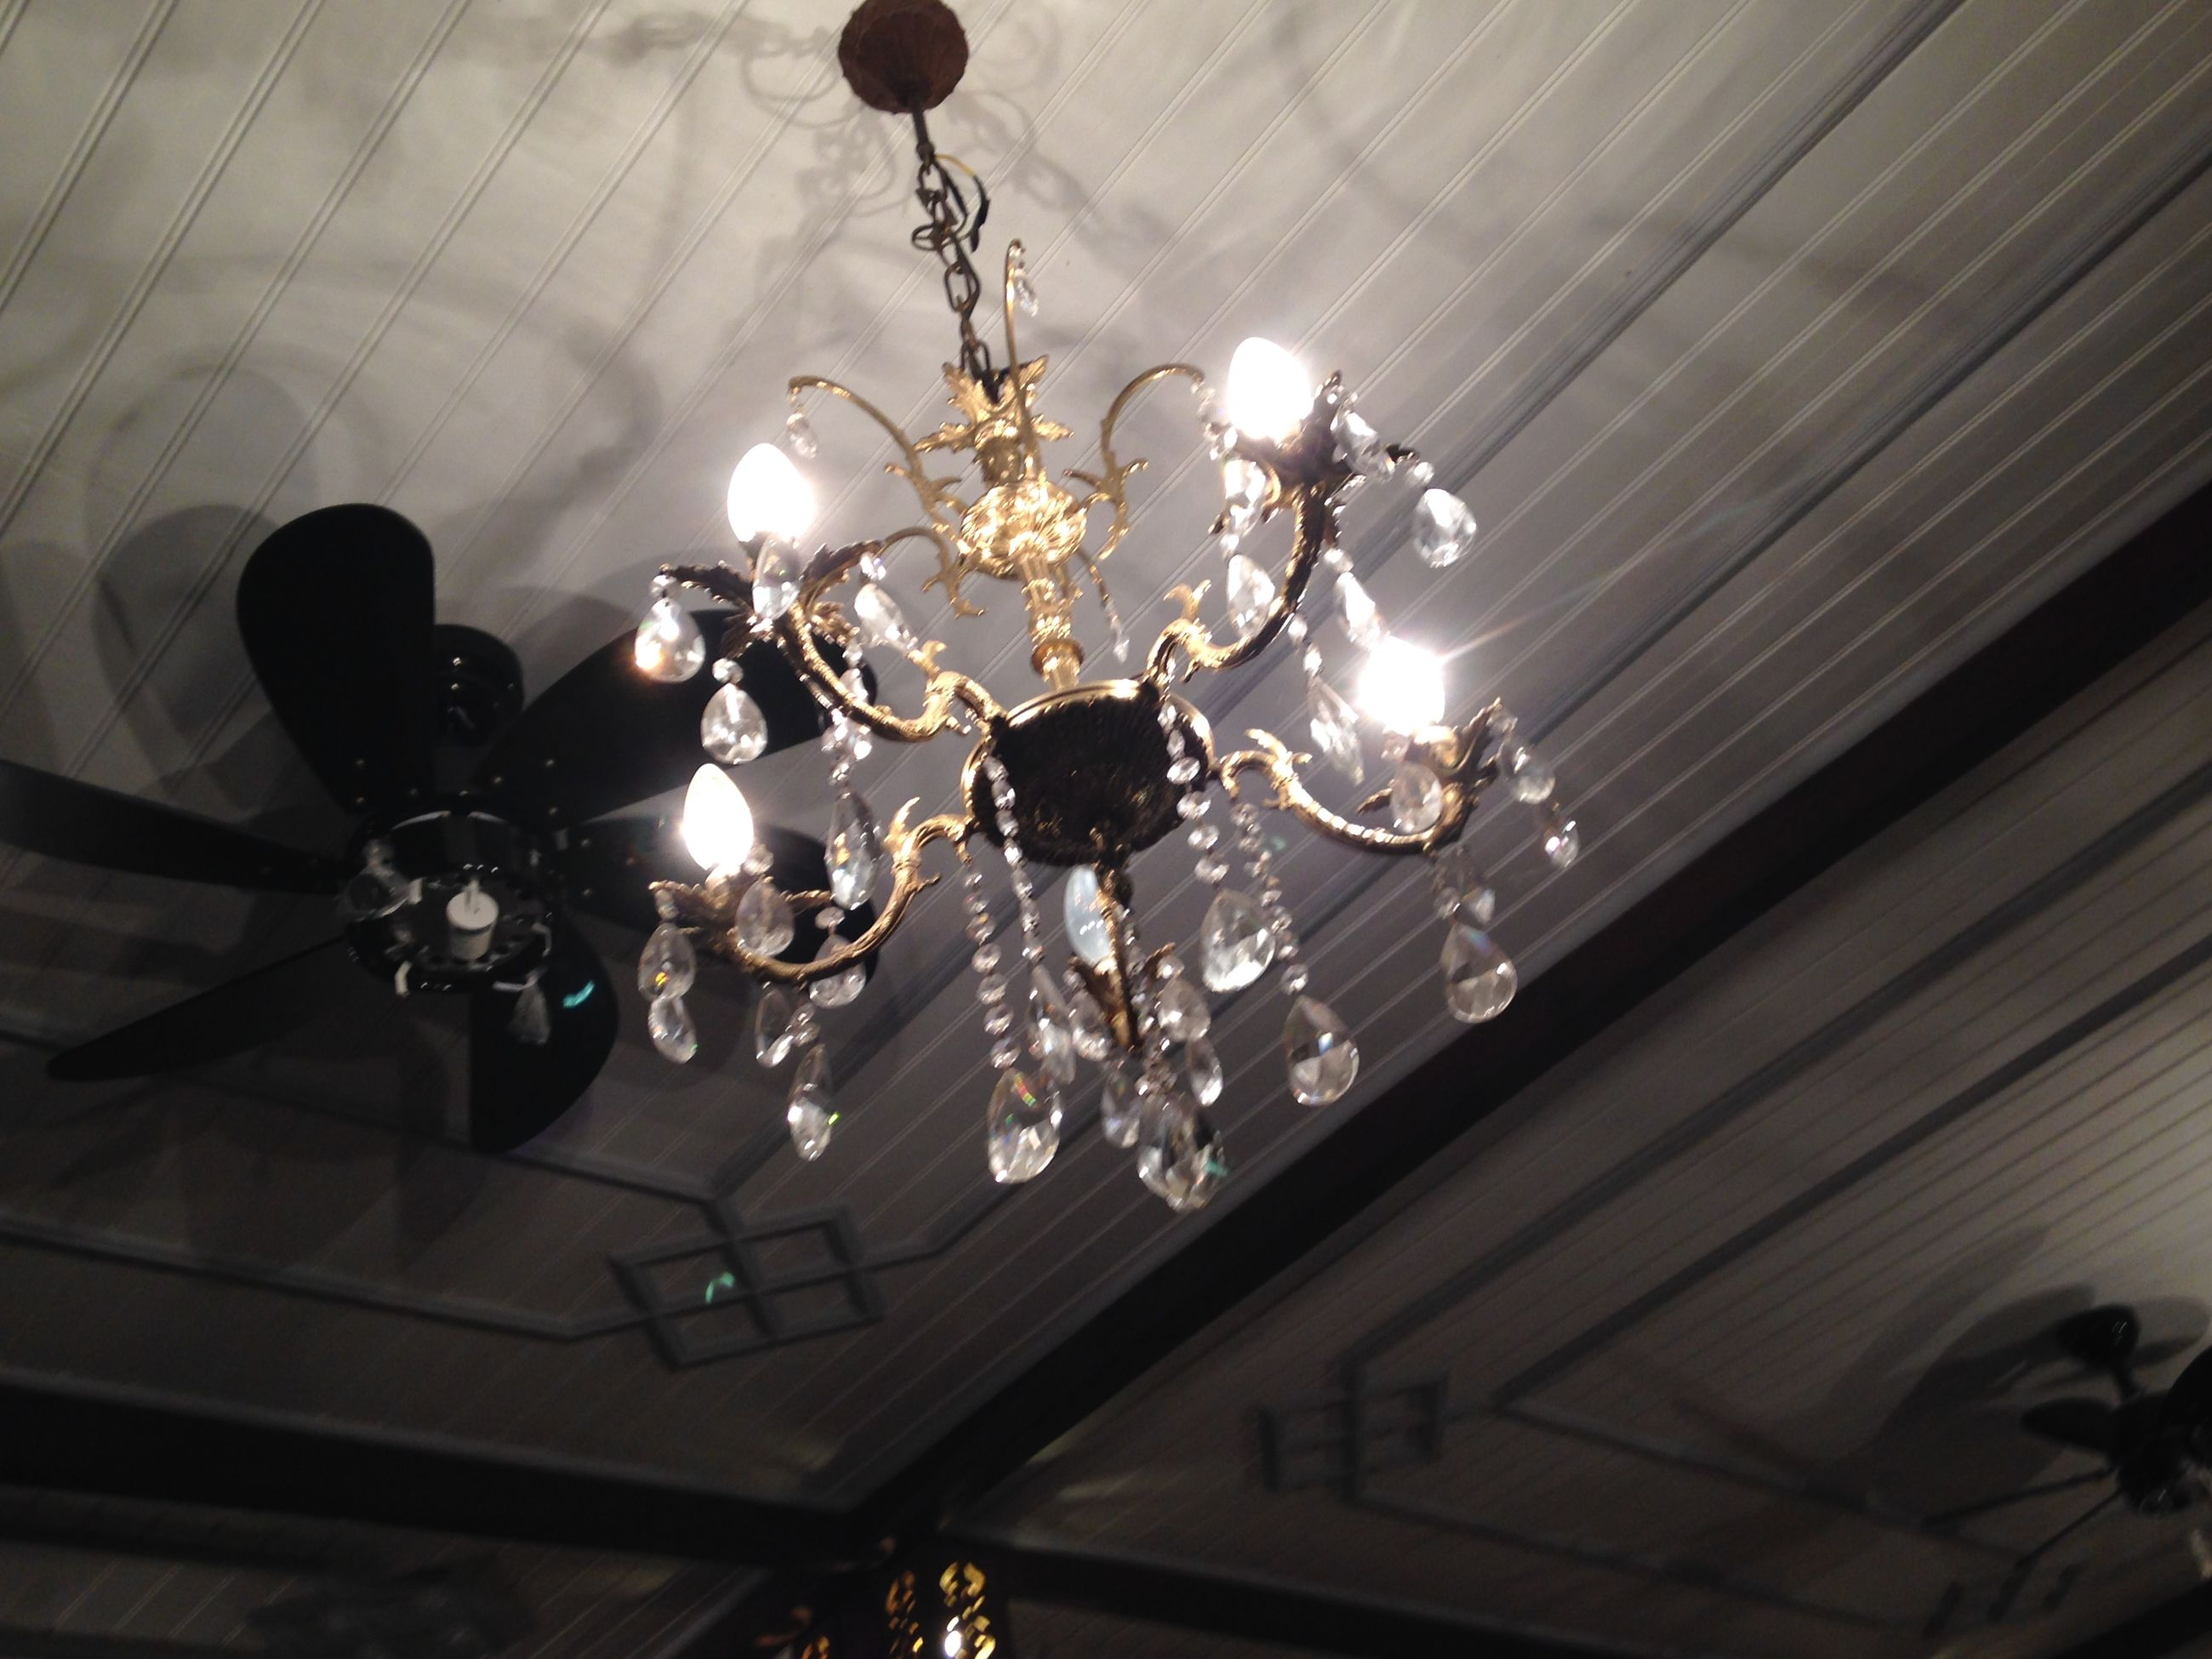 indoors, hanging, lighting equipment, ceiling, illuminated, decoration, chandelier, electric lamp, electricity, low angle view, decor, electric light, home interior, lantern, light bulb, table, lamp, no people, wall - building feature, light - natural phenomenon